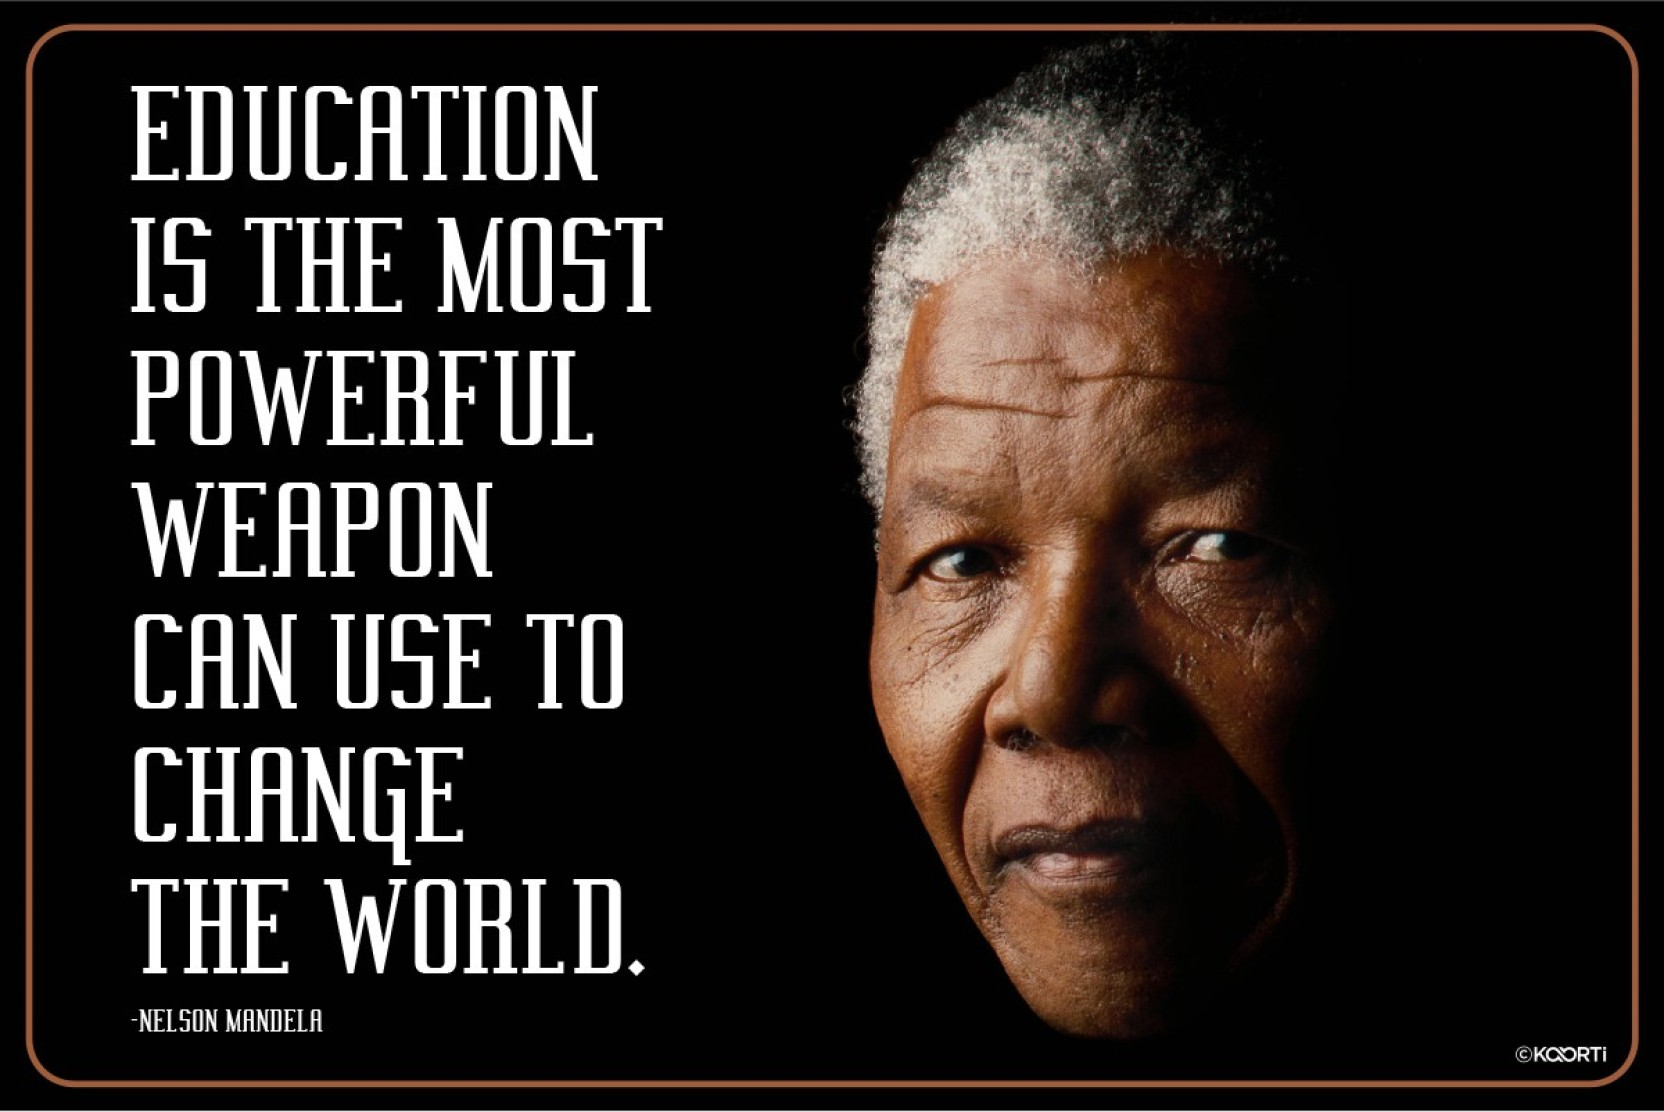 education is the most powerful nelson mandela quote mini sticker